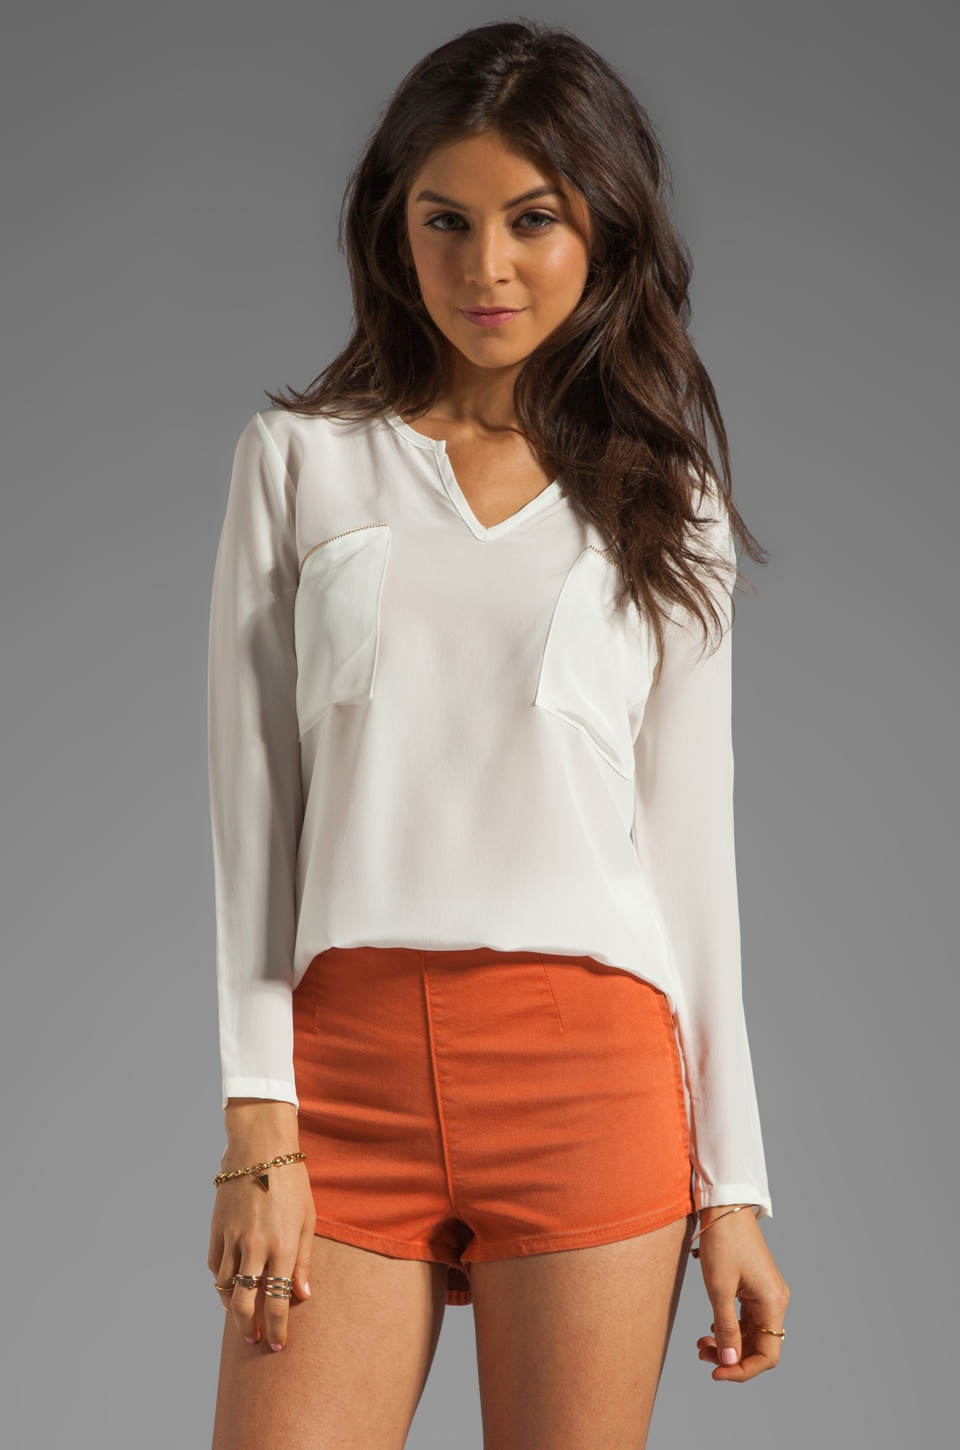 LNA Owen Blouse in Ivory